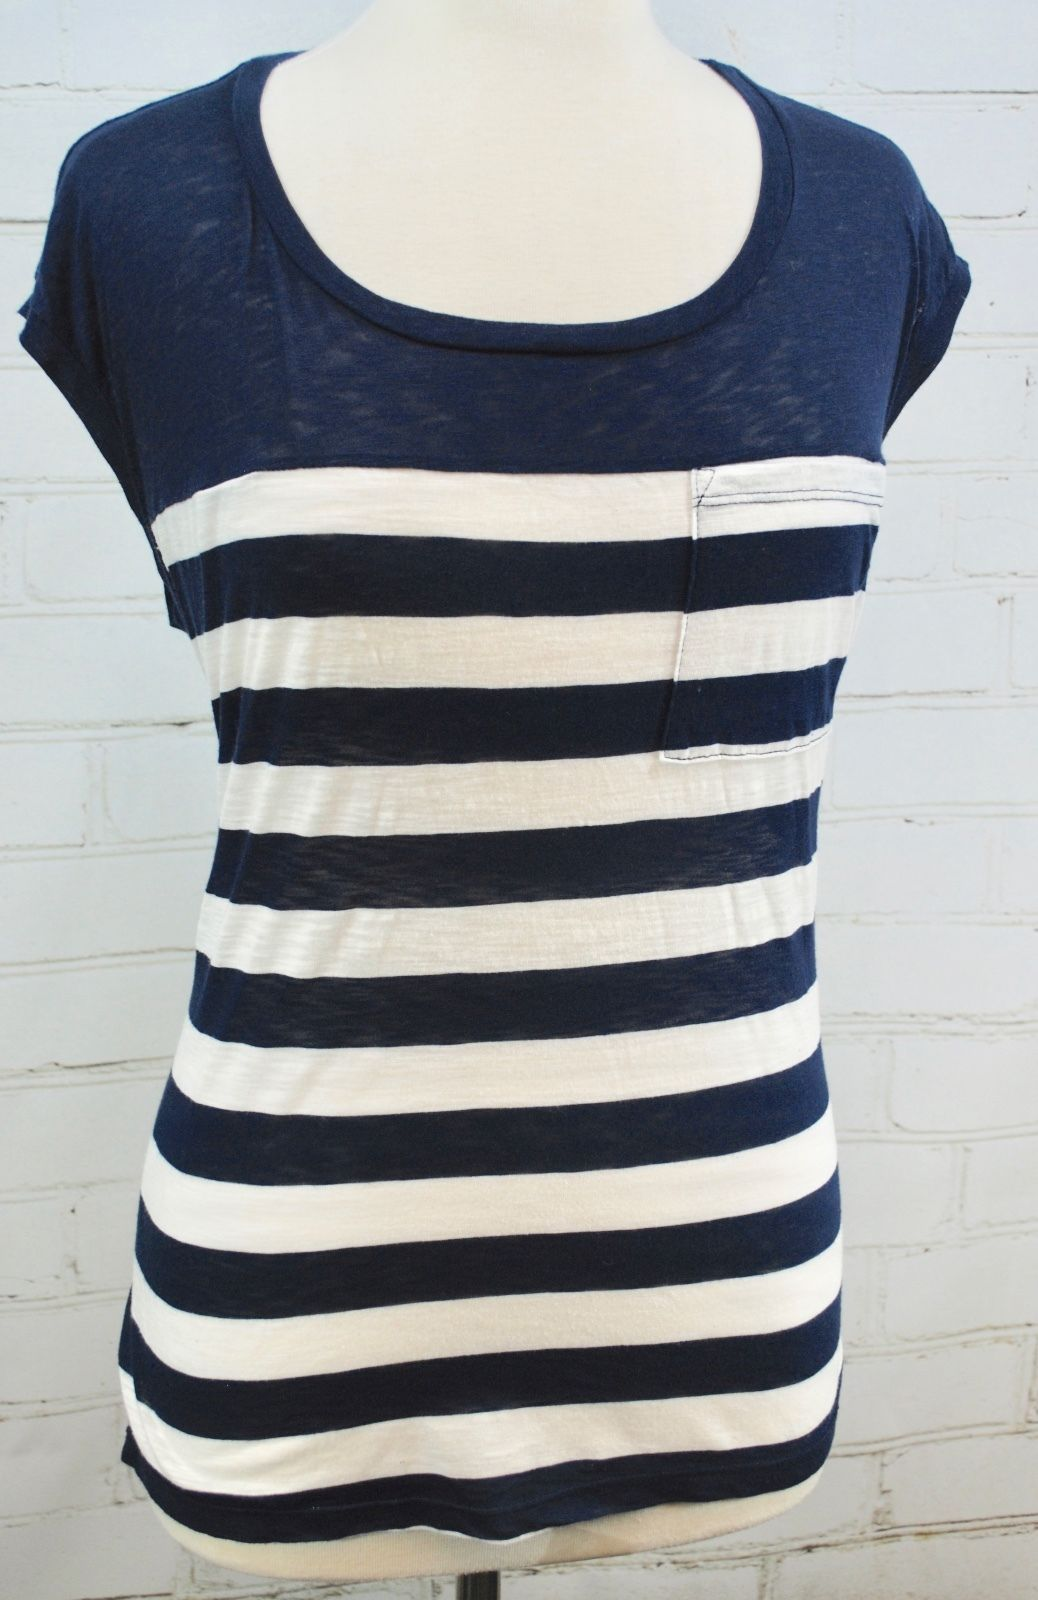 Splendid Striped T-Shirt Knit Tee Striped Cap Sleeve - Navy Blue Size Small